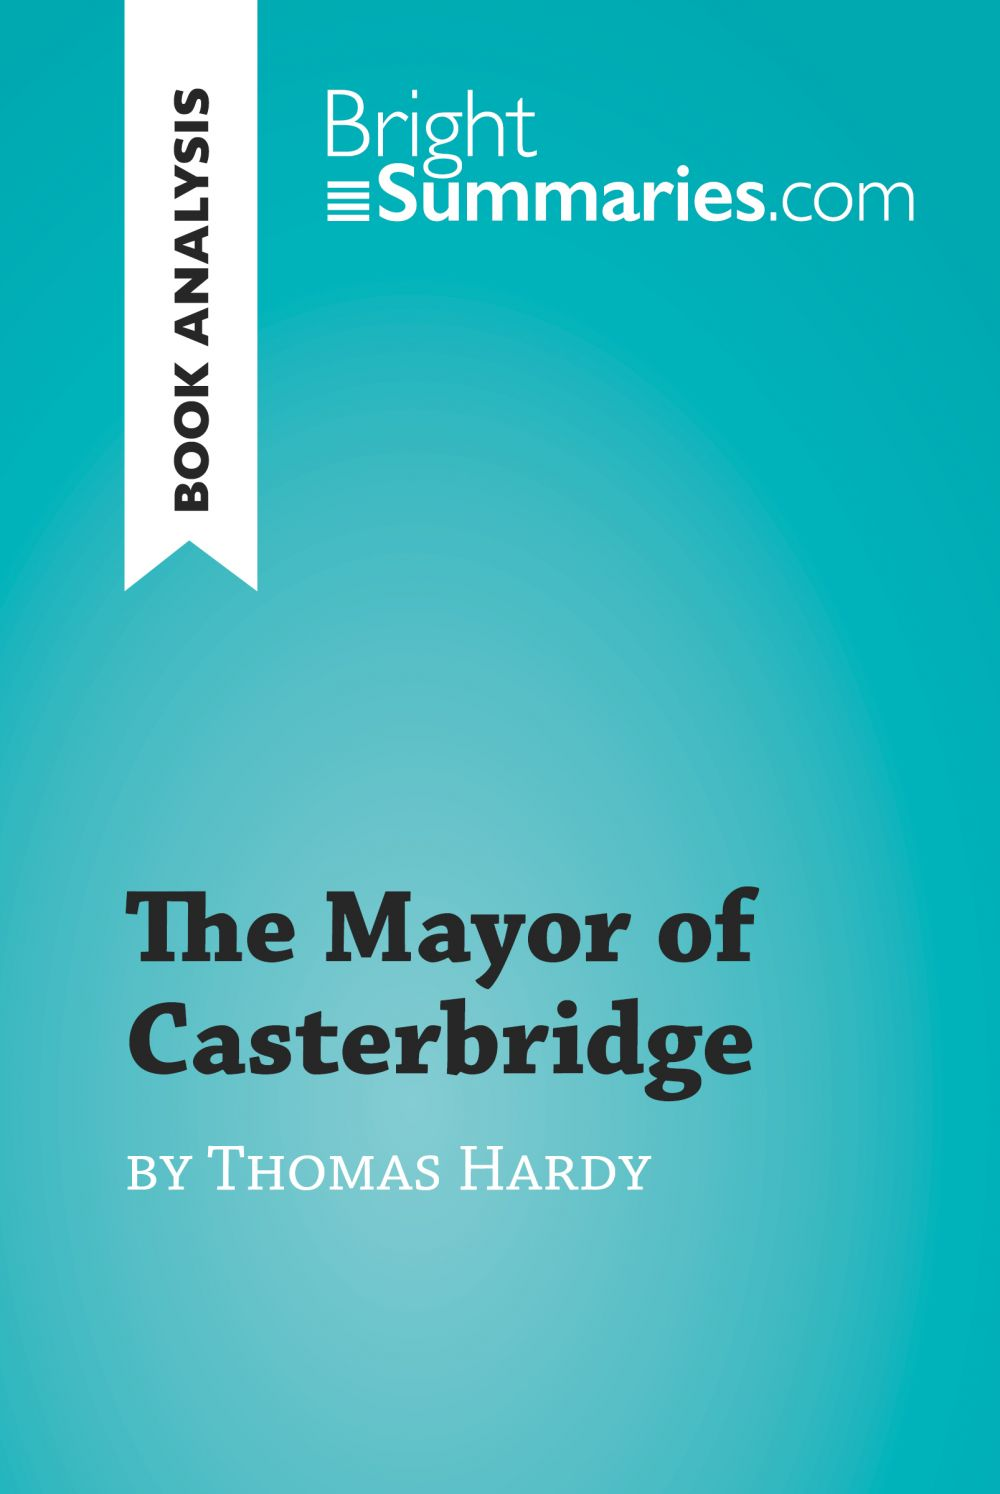 The Mayor of Casterbridge by Thomas Hardy (Book Analysis)